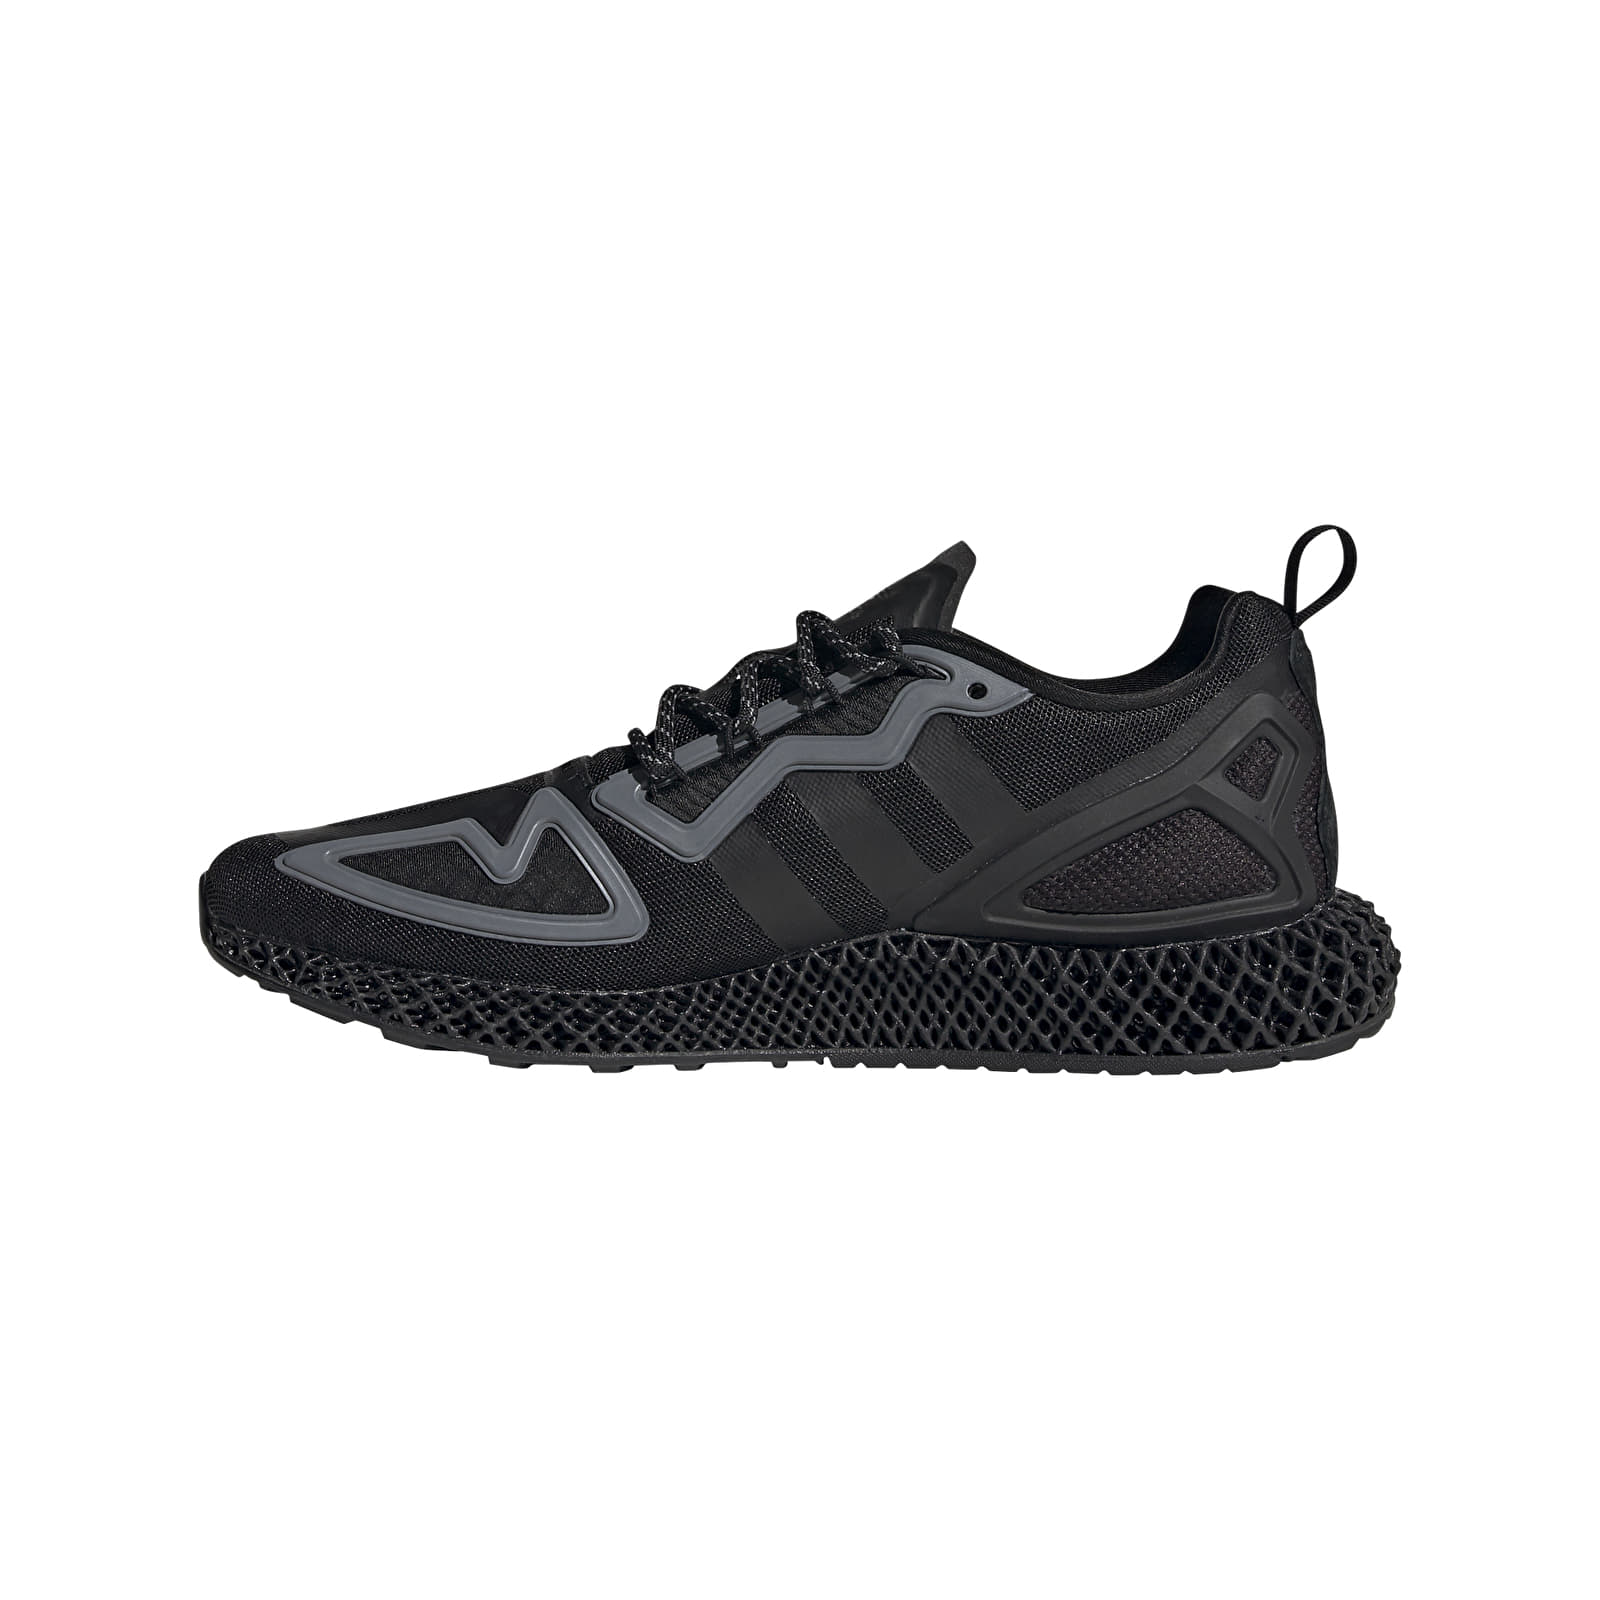 Men's shoes adidas ZX 2K 4D Core Black/ Core Black/ Core Black